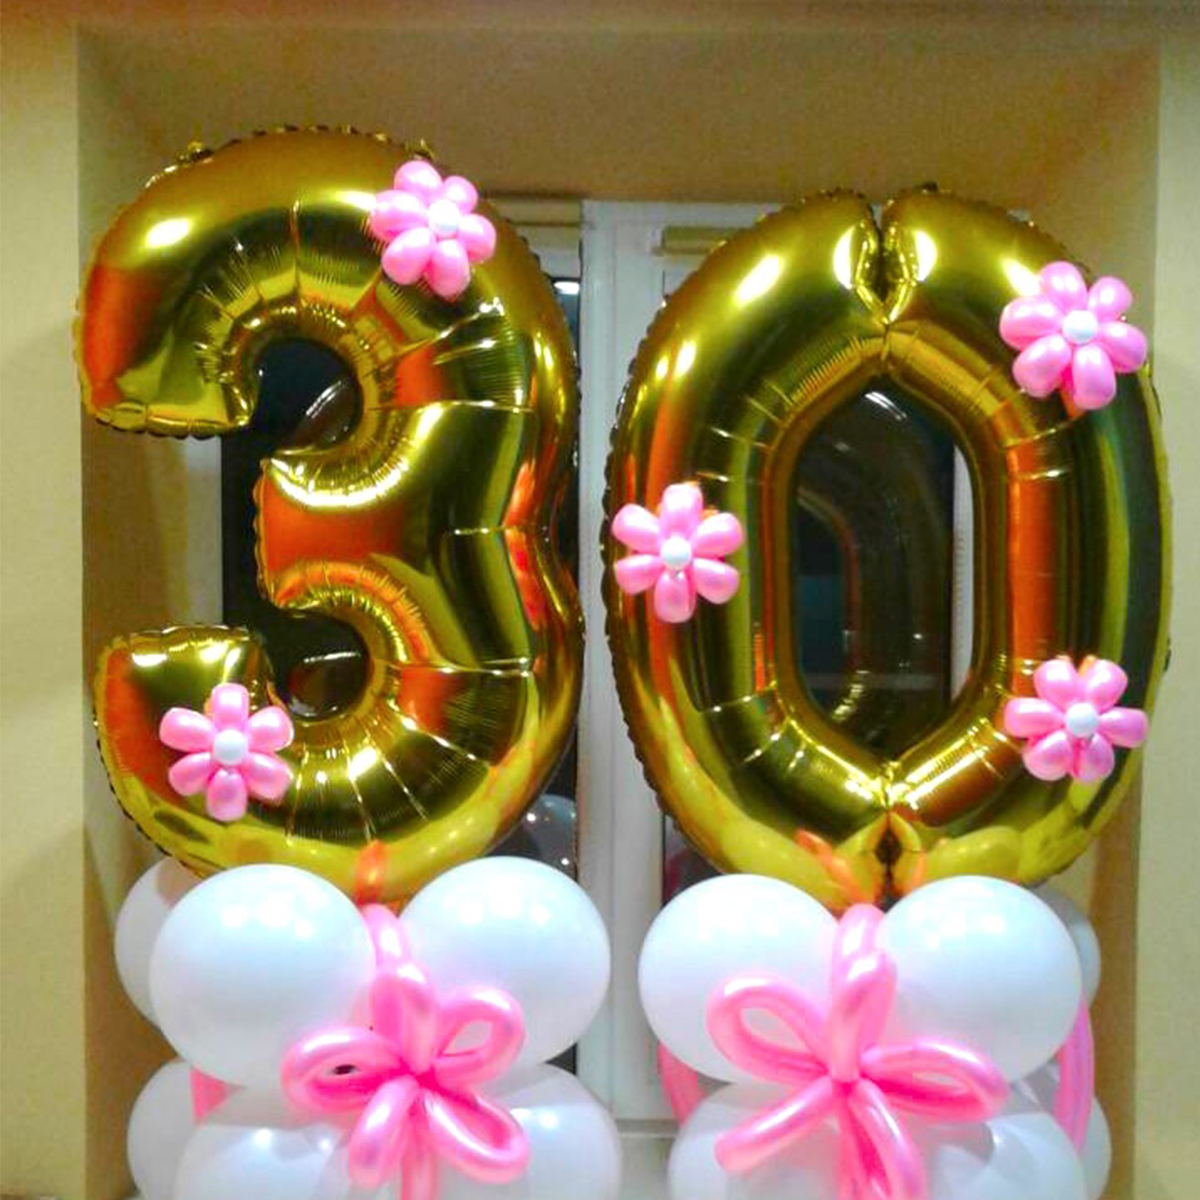 YORIWOO 32inch 62cm 30th Birthday Balloons Happy 30 Years Foil Helium Party Decorations Adult Men Women Favors In Ballons Accessories